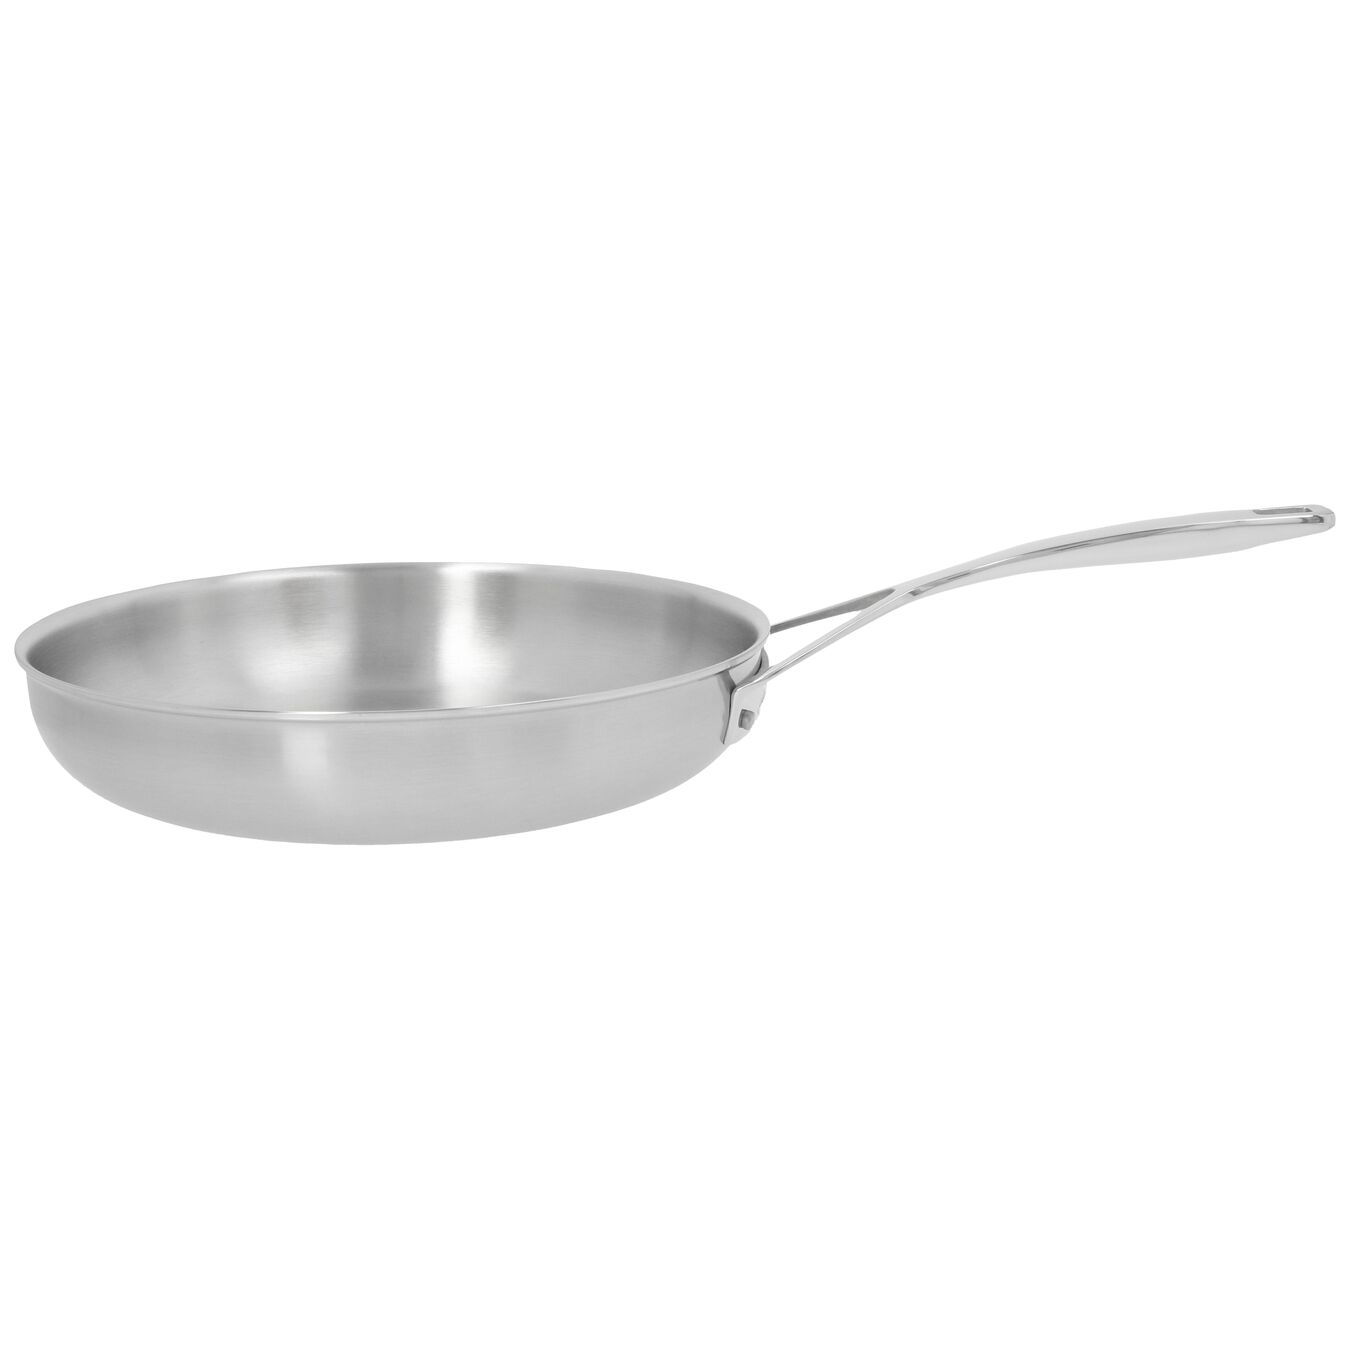 32 cm / 12.5 inch frying pan with lid,,large 1